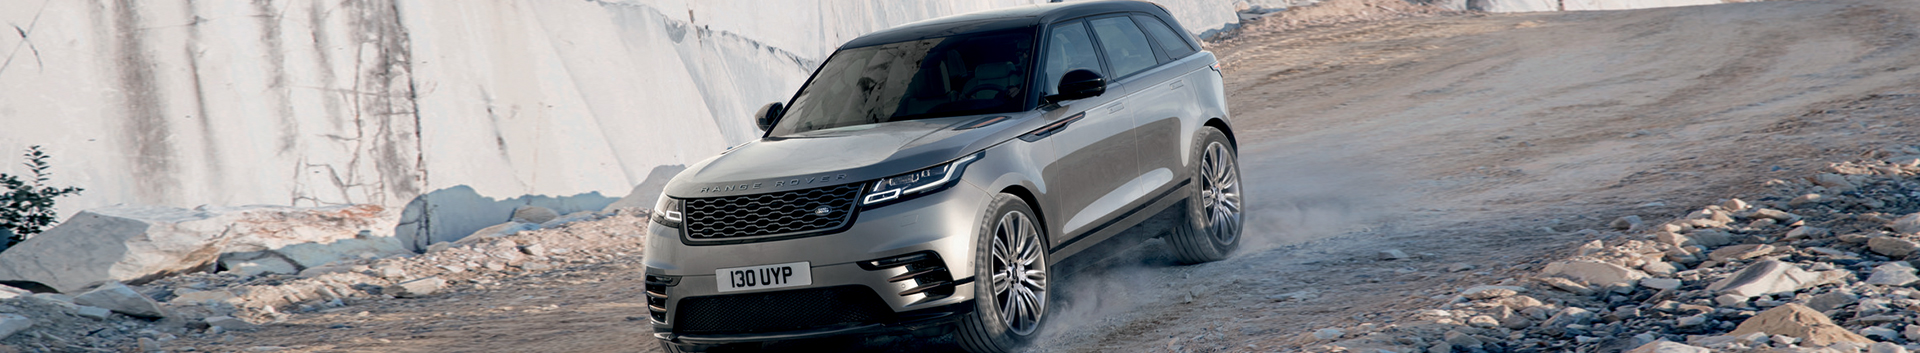 Land Rover Velar on rough roads